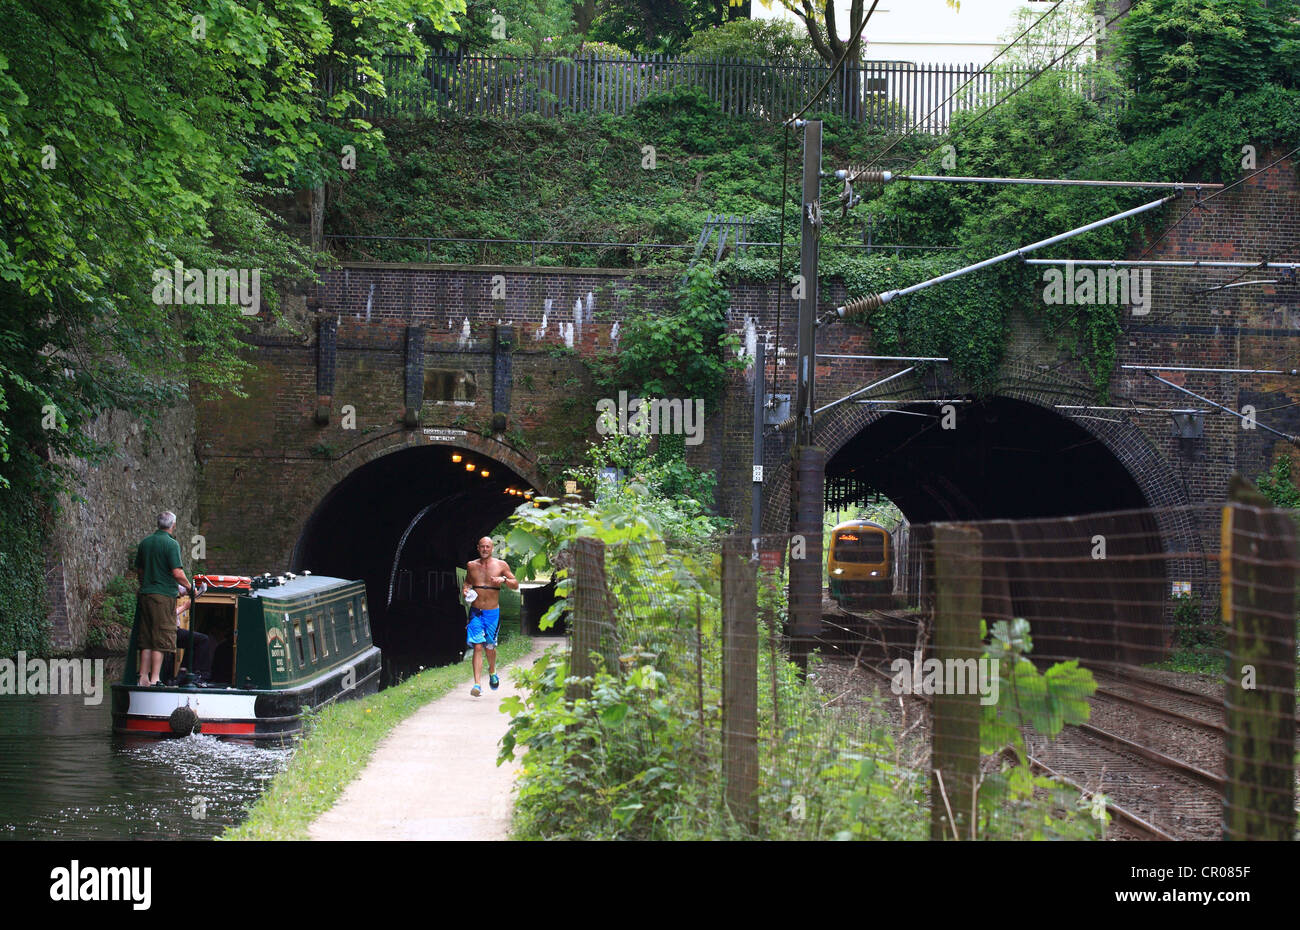 a view of a bridge with two arches - one crossing a railway and the other crossing a canal in Birmingham - a jogger Stock Photo